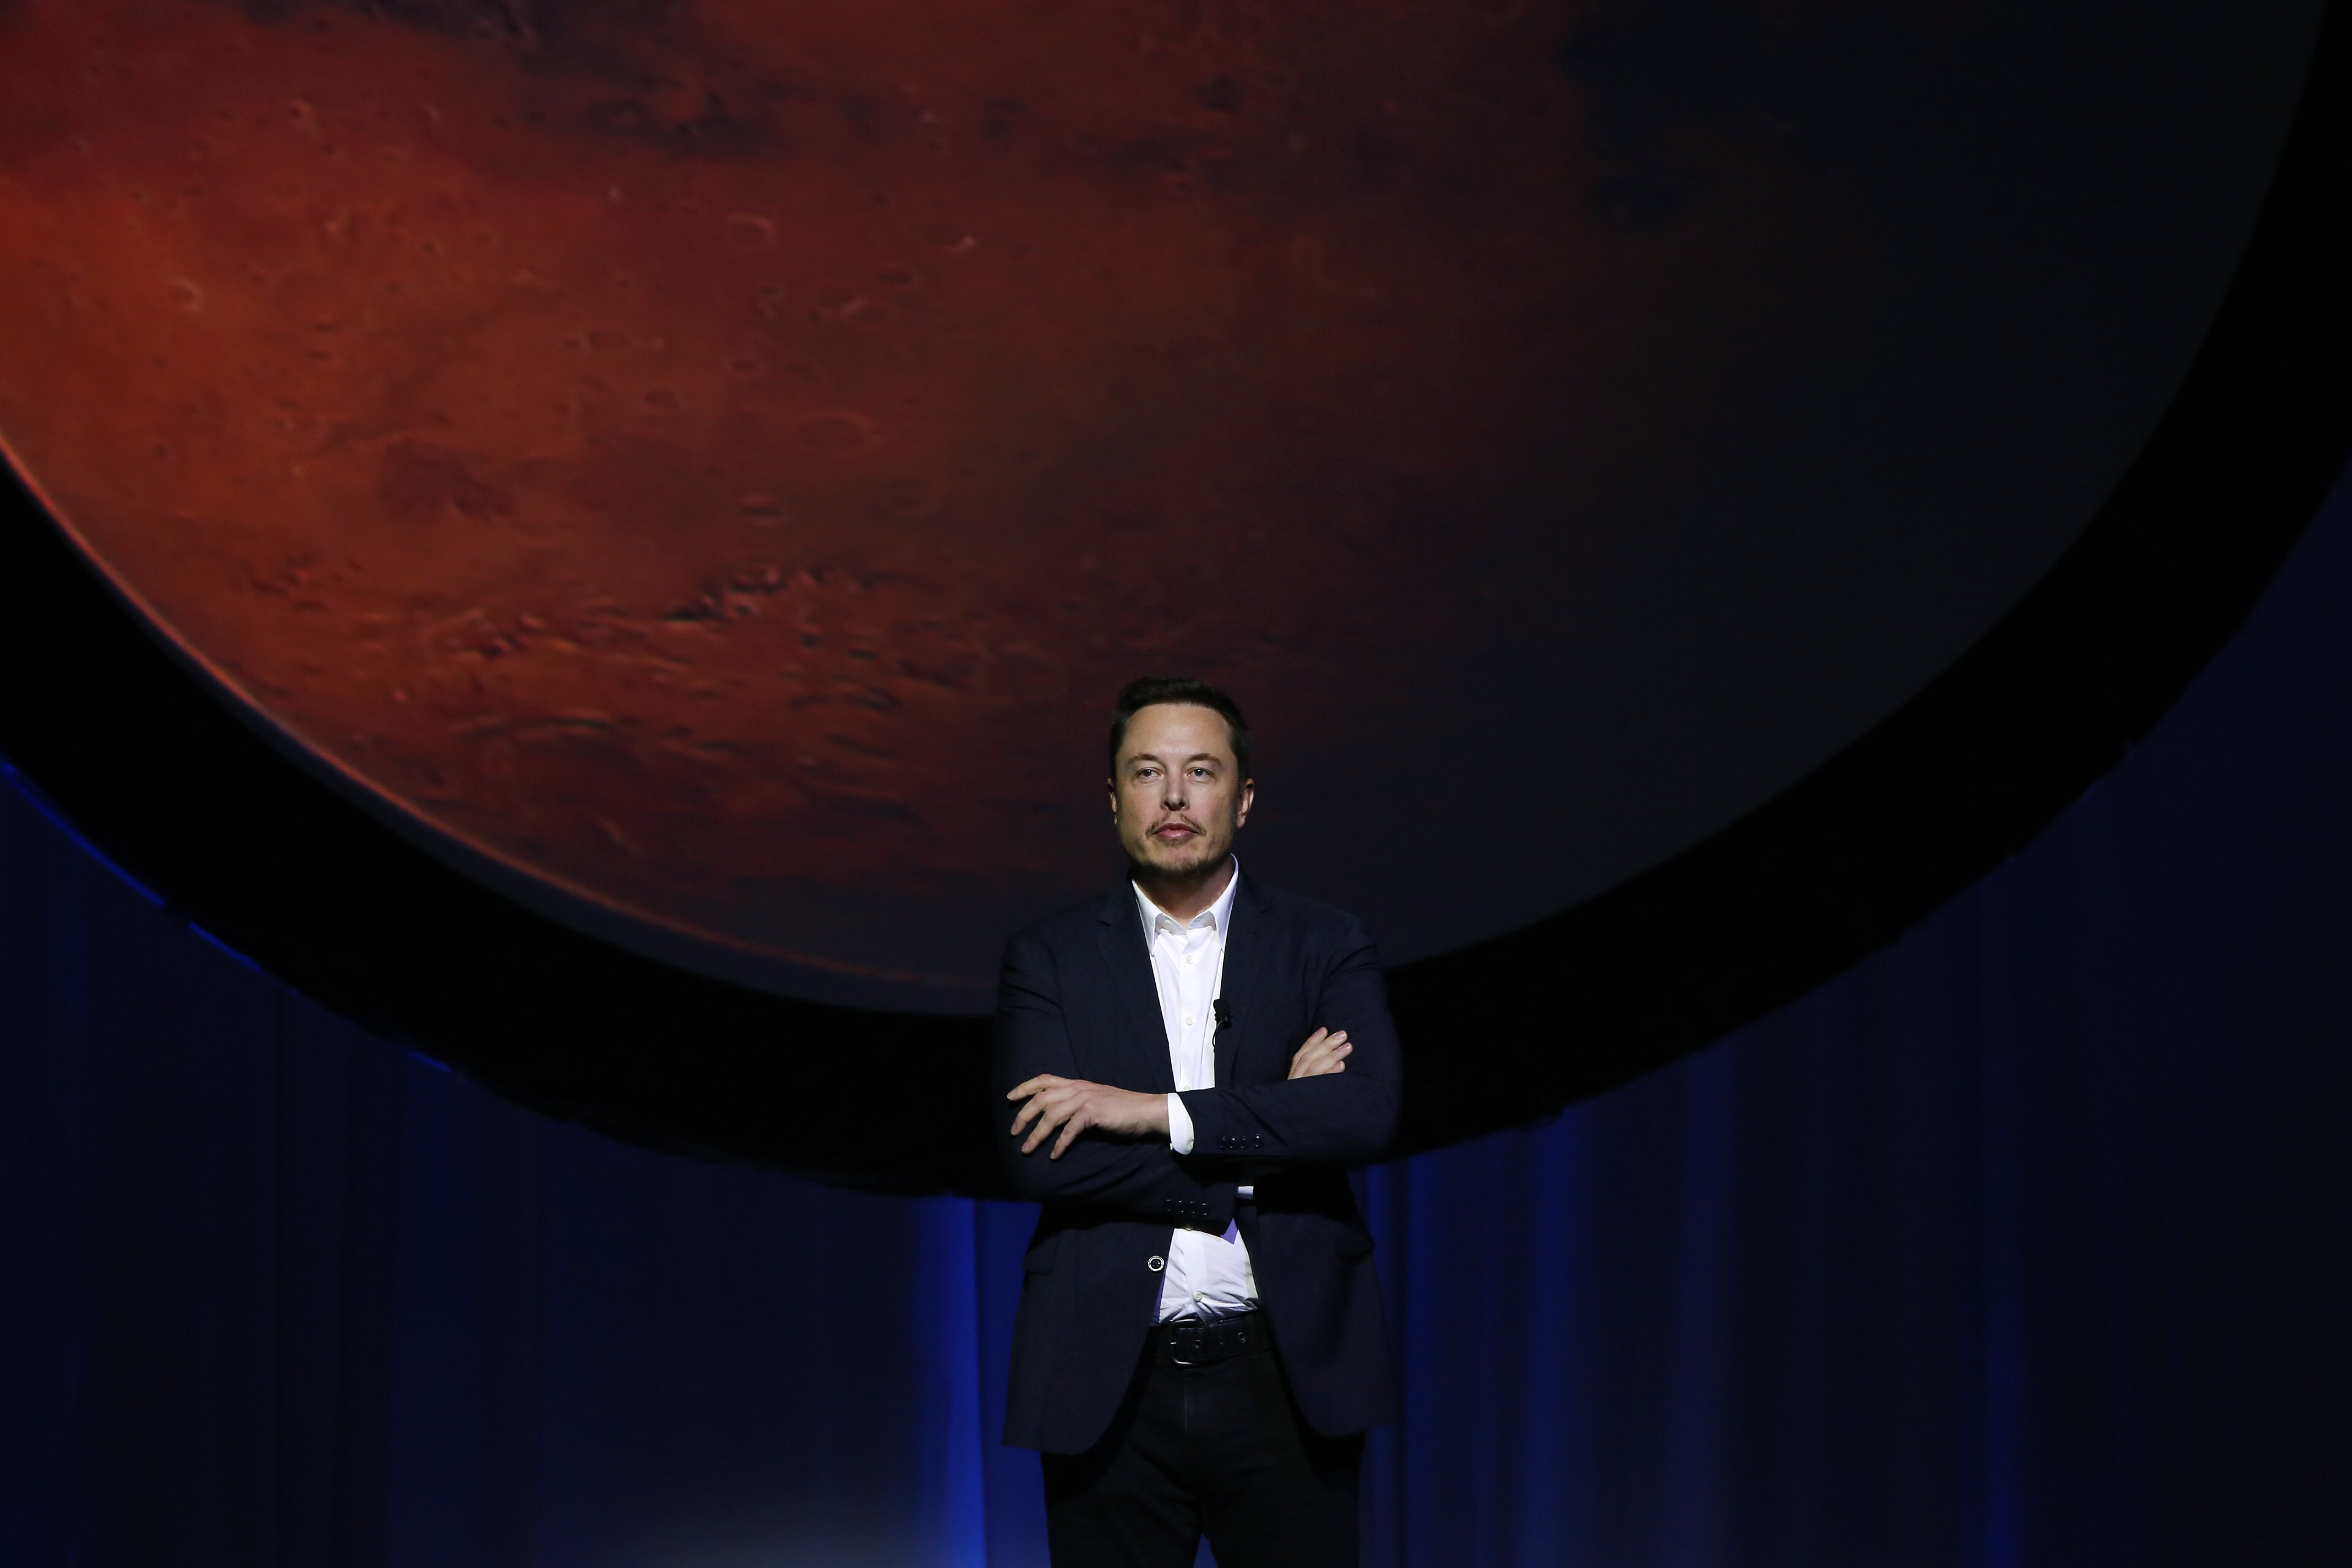 """Elon Musk, chief executive officer for Space Exploration Technologies Corp. (SpaceX), pauses during the 67th International Astronautical Congress (IAC) in Guadalajara, Mexico, on Tuesday, Sept. 27, 2016. Musk delivered a keynote address at the conference titled """"Making Humans a Multiplanetary Species"""" and tackled the technical challenges and """"potential architectures for colonizing the Red Planet."""" Photographer: Susana Gonzalez/Bloomberg via Getty Images"""